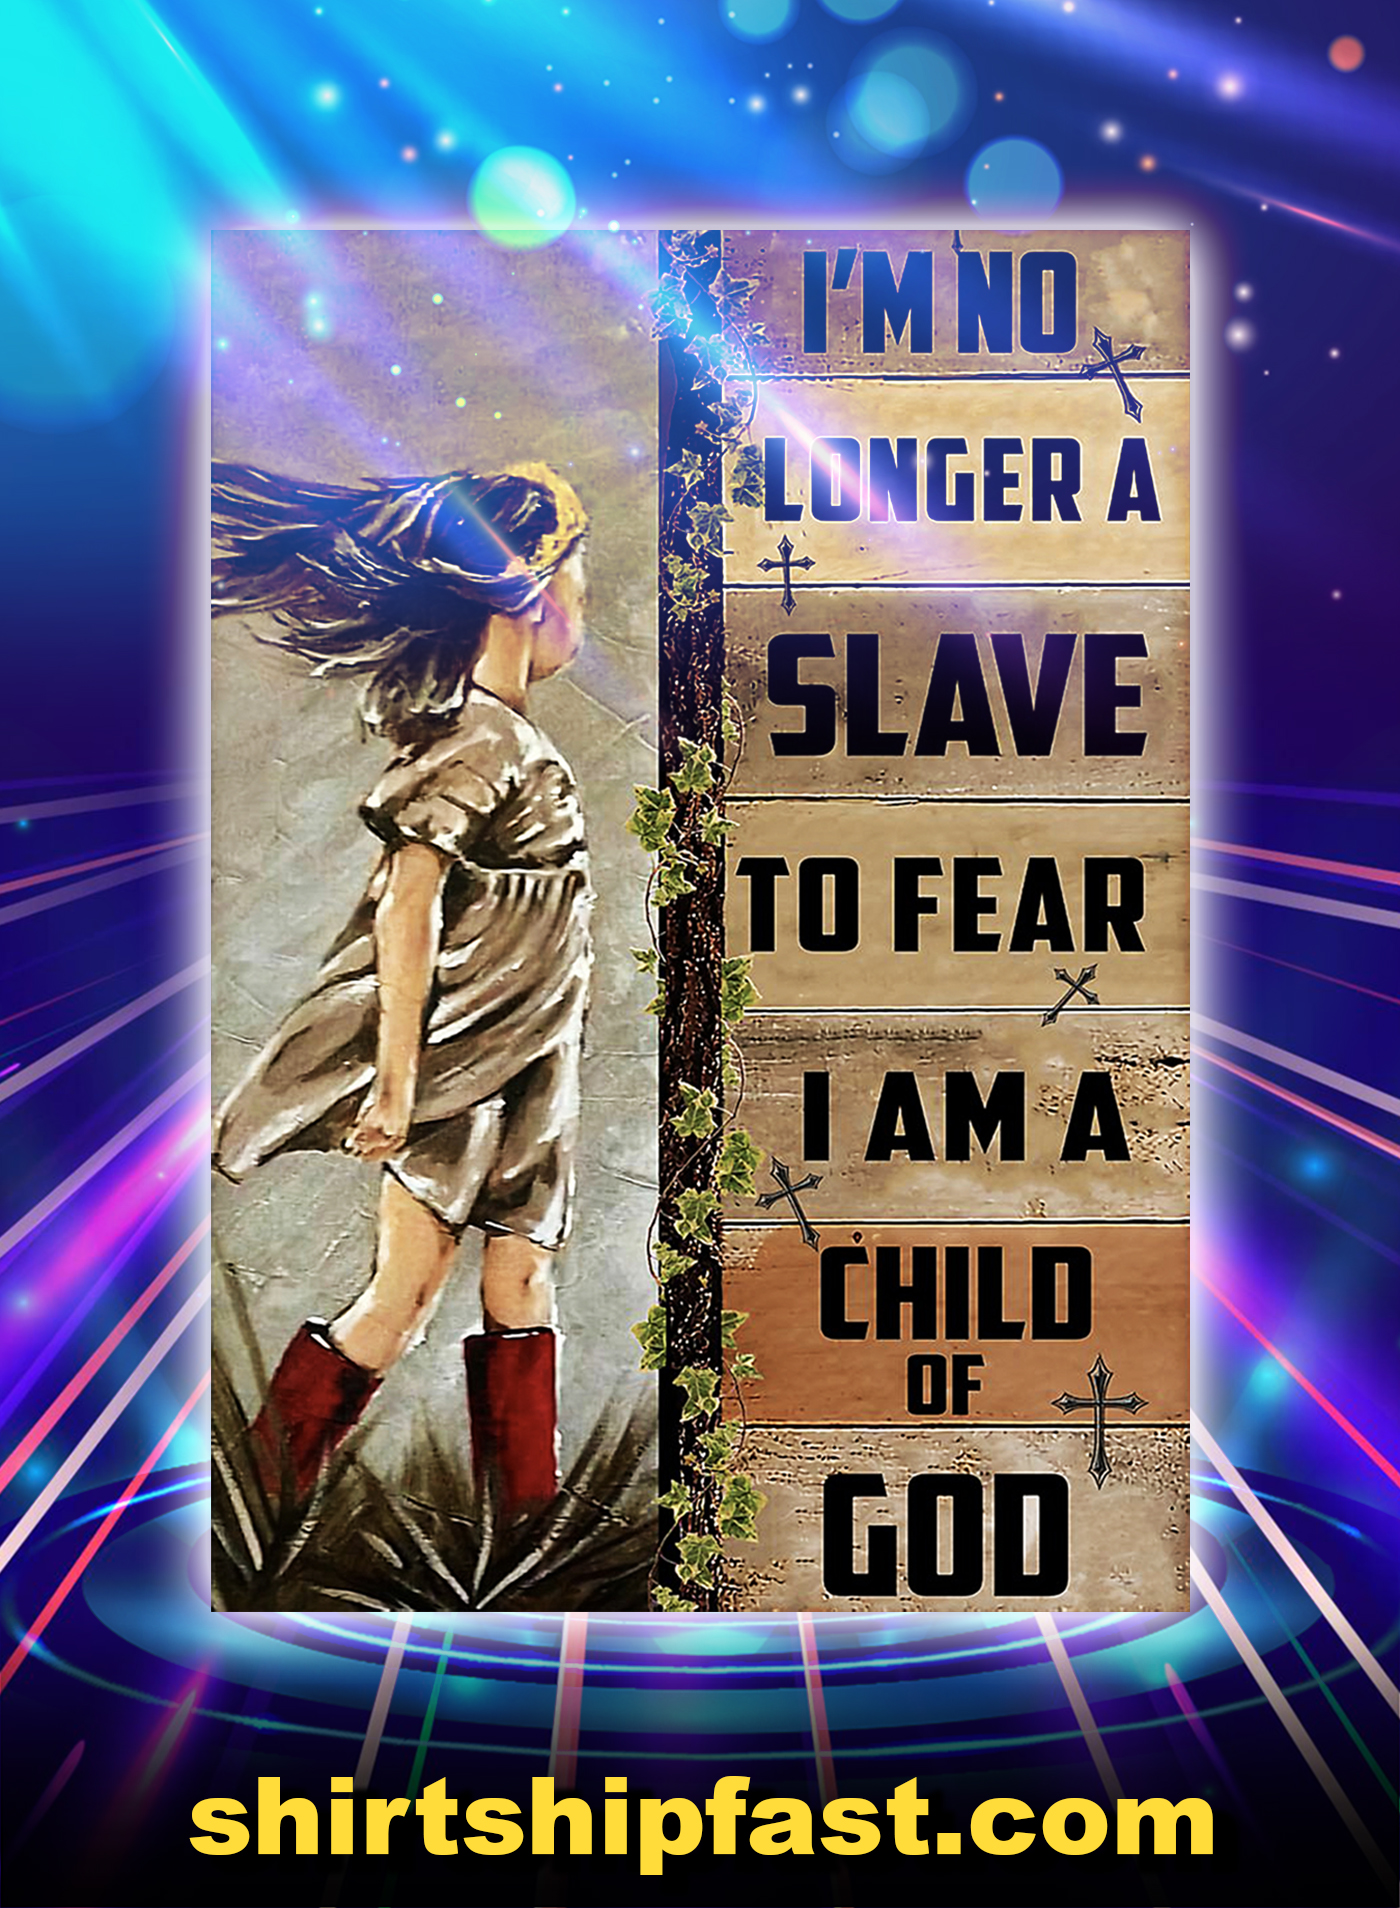 I'm no longer a slave to fear i am a child of god poster - A1